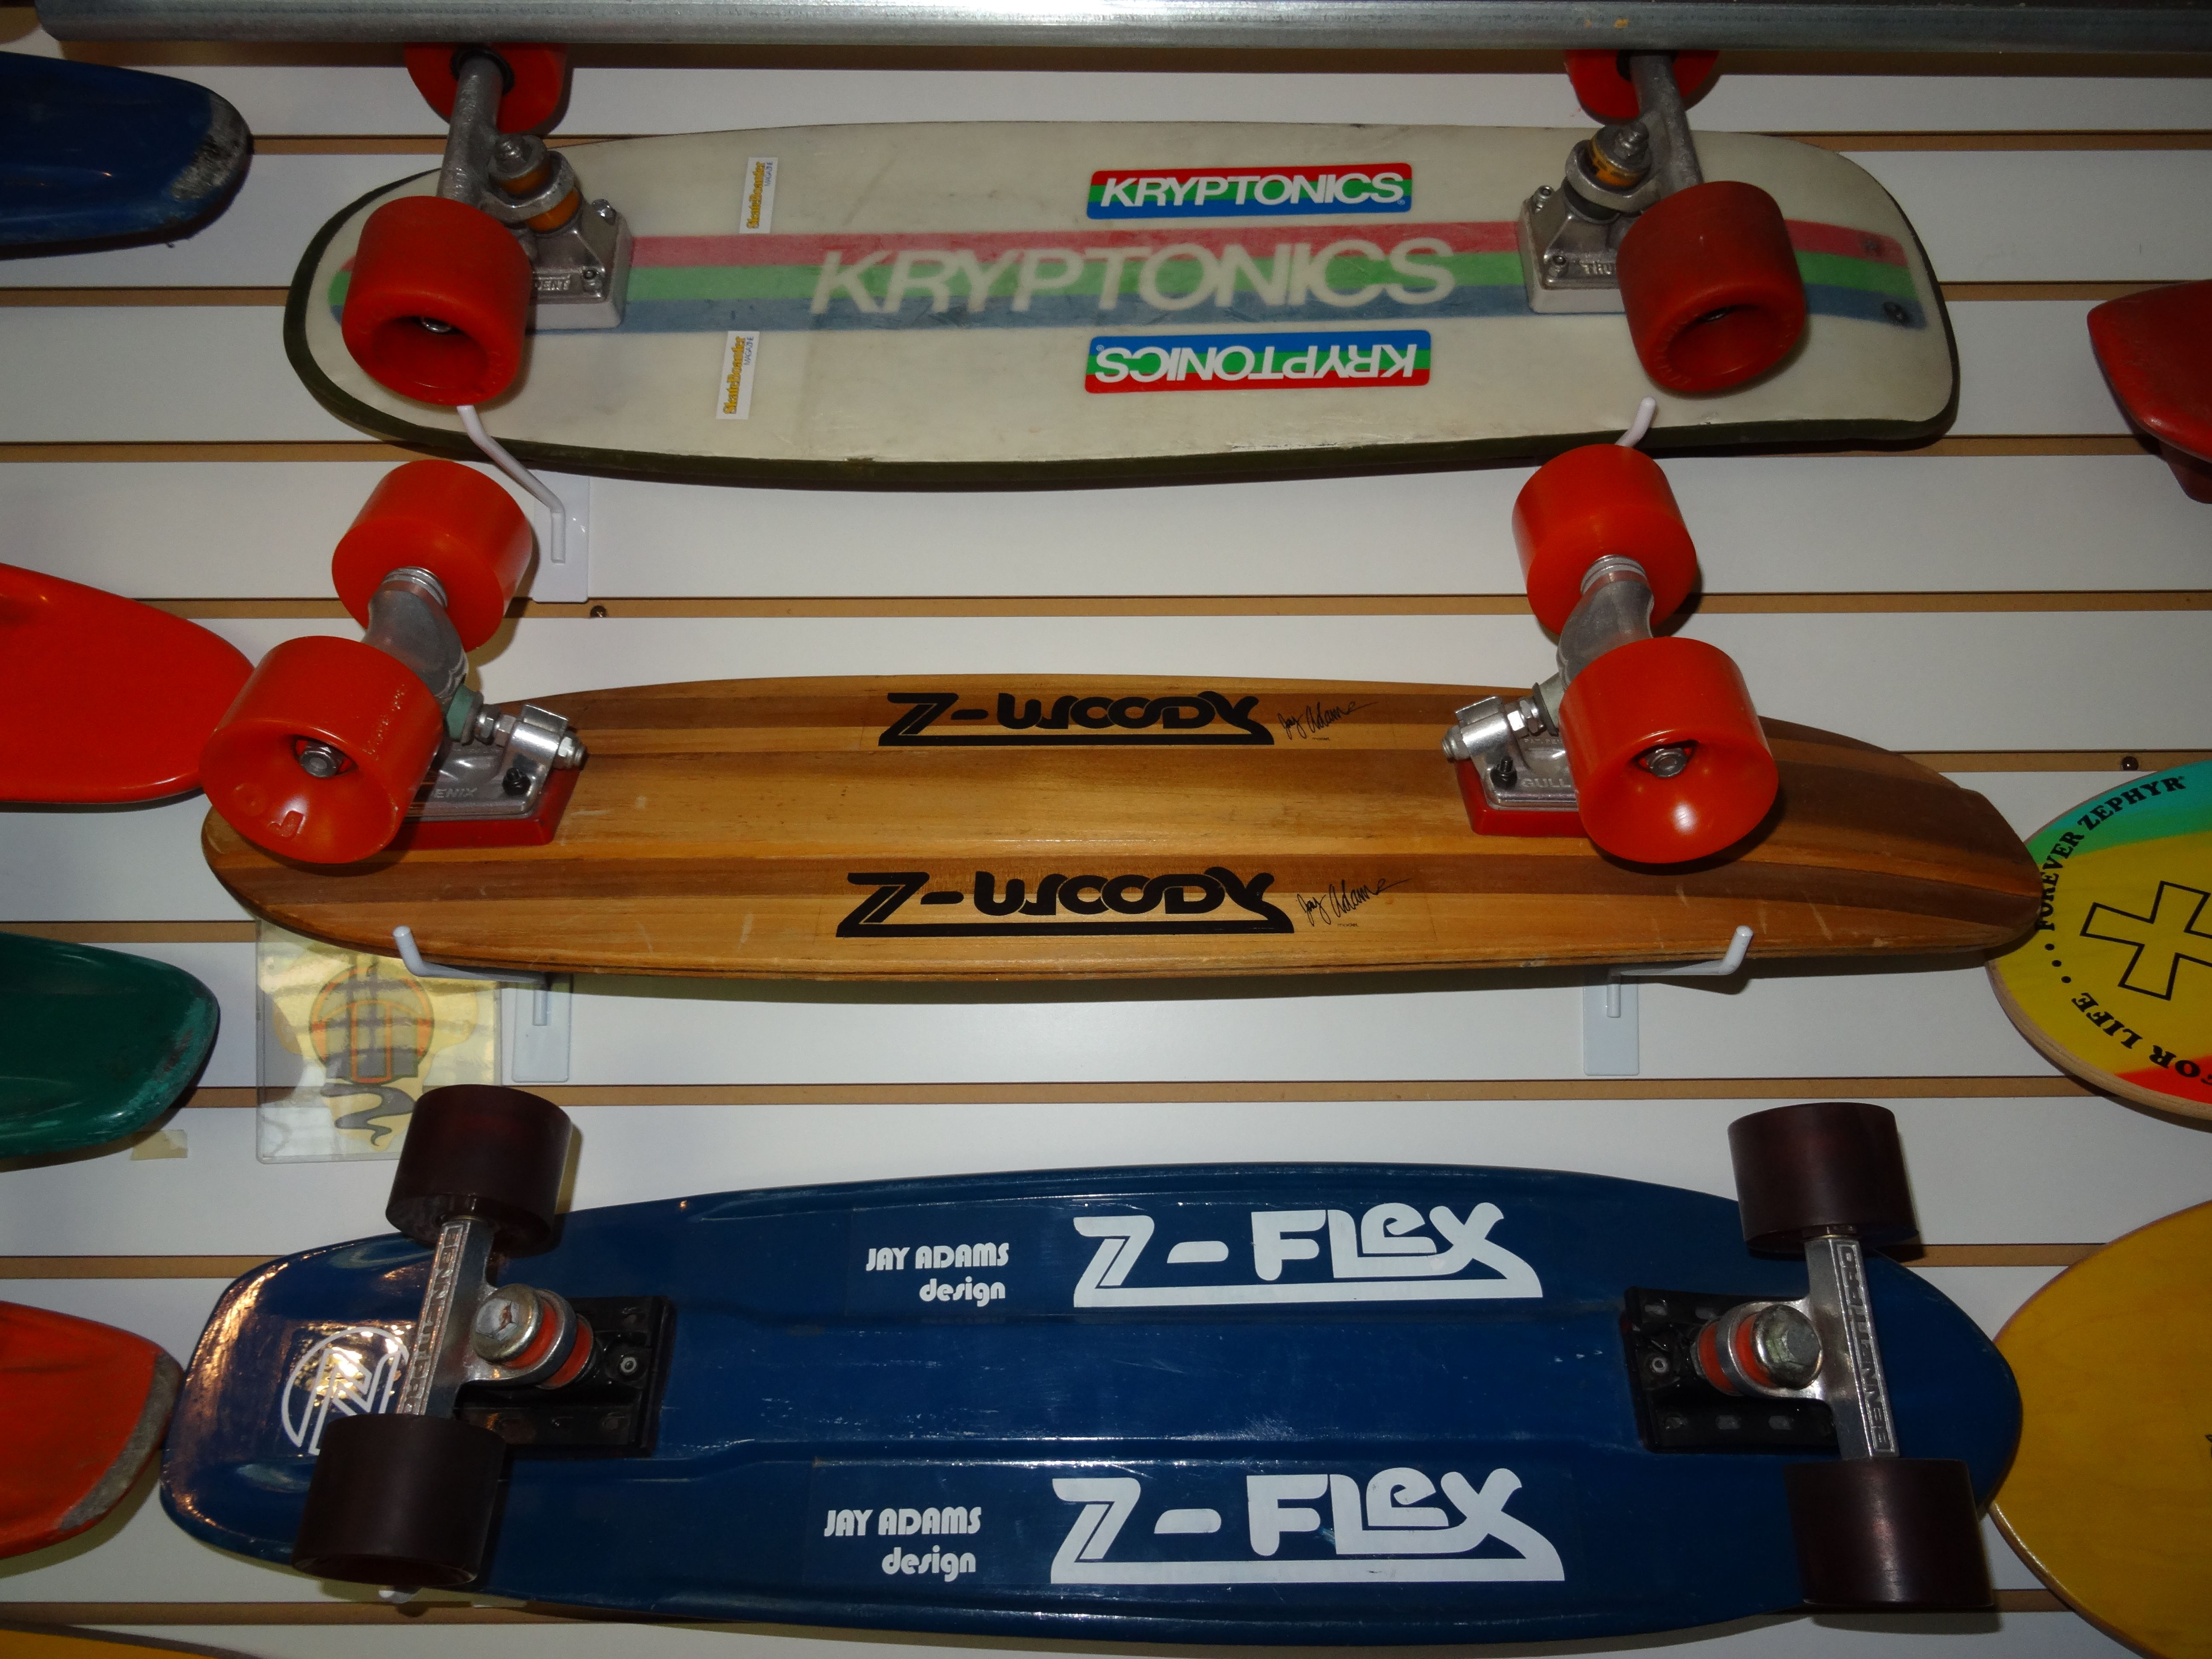 Bob Bekian S Skateboard Collection Includes These Rare Jay Adams Z Flex Boards From 1978 Jayadams Dog Skateboard Design Vintage Skateboards Skateboard Images